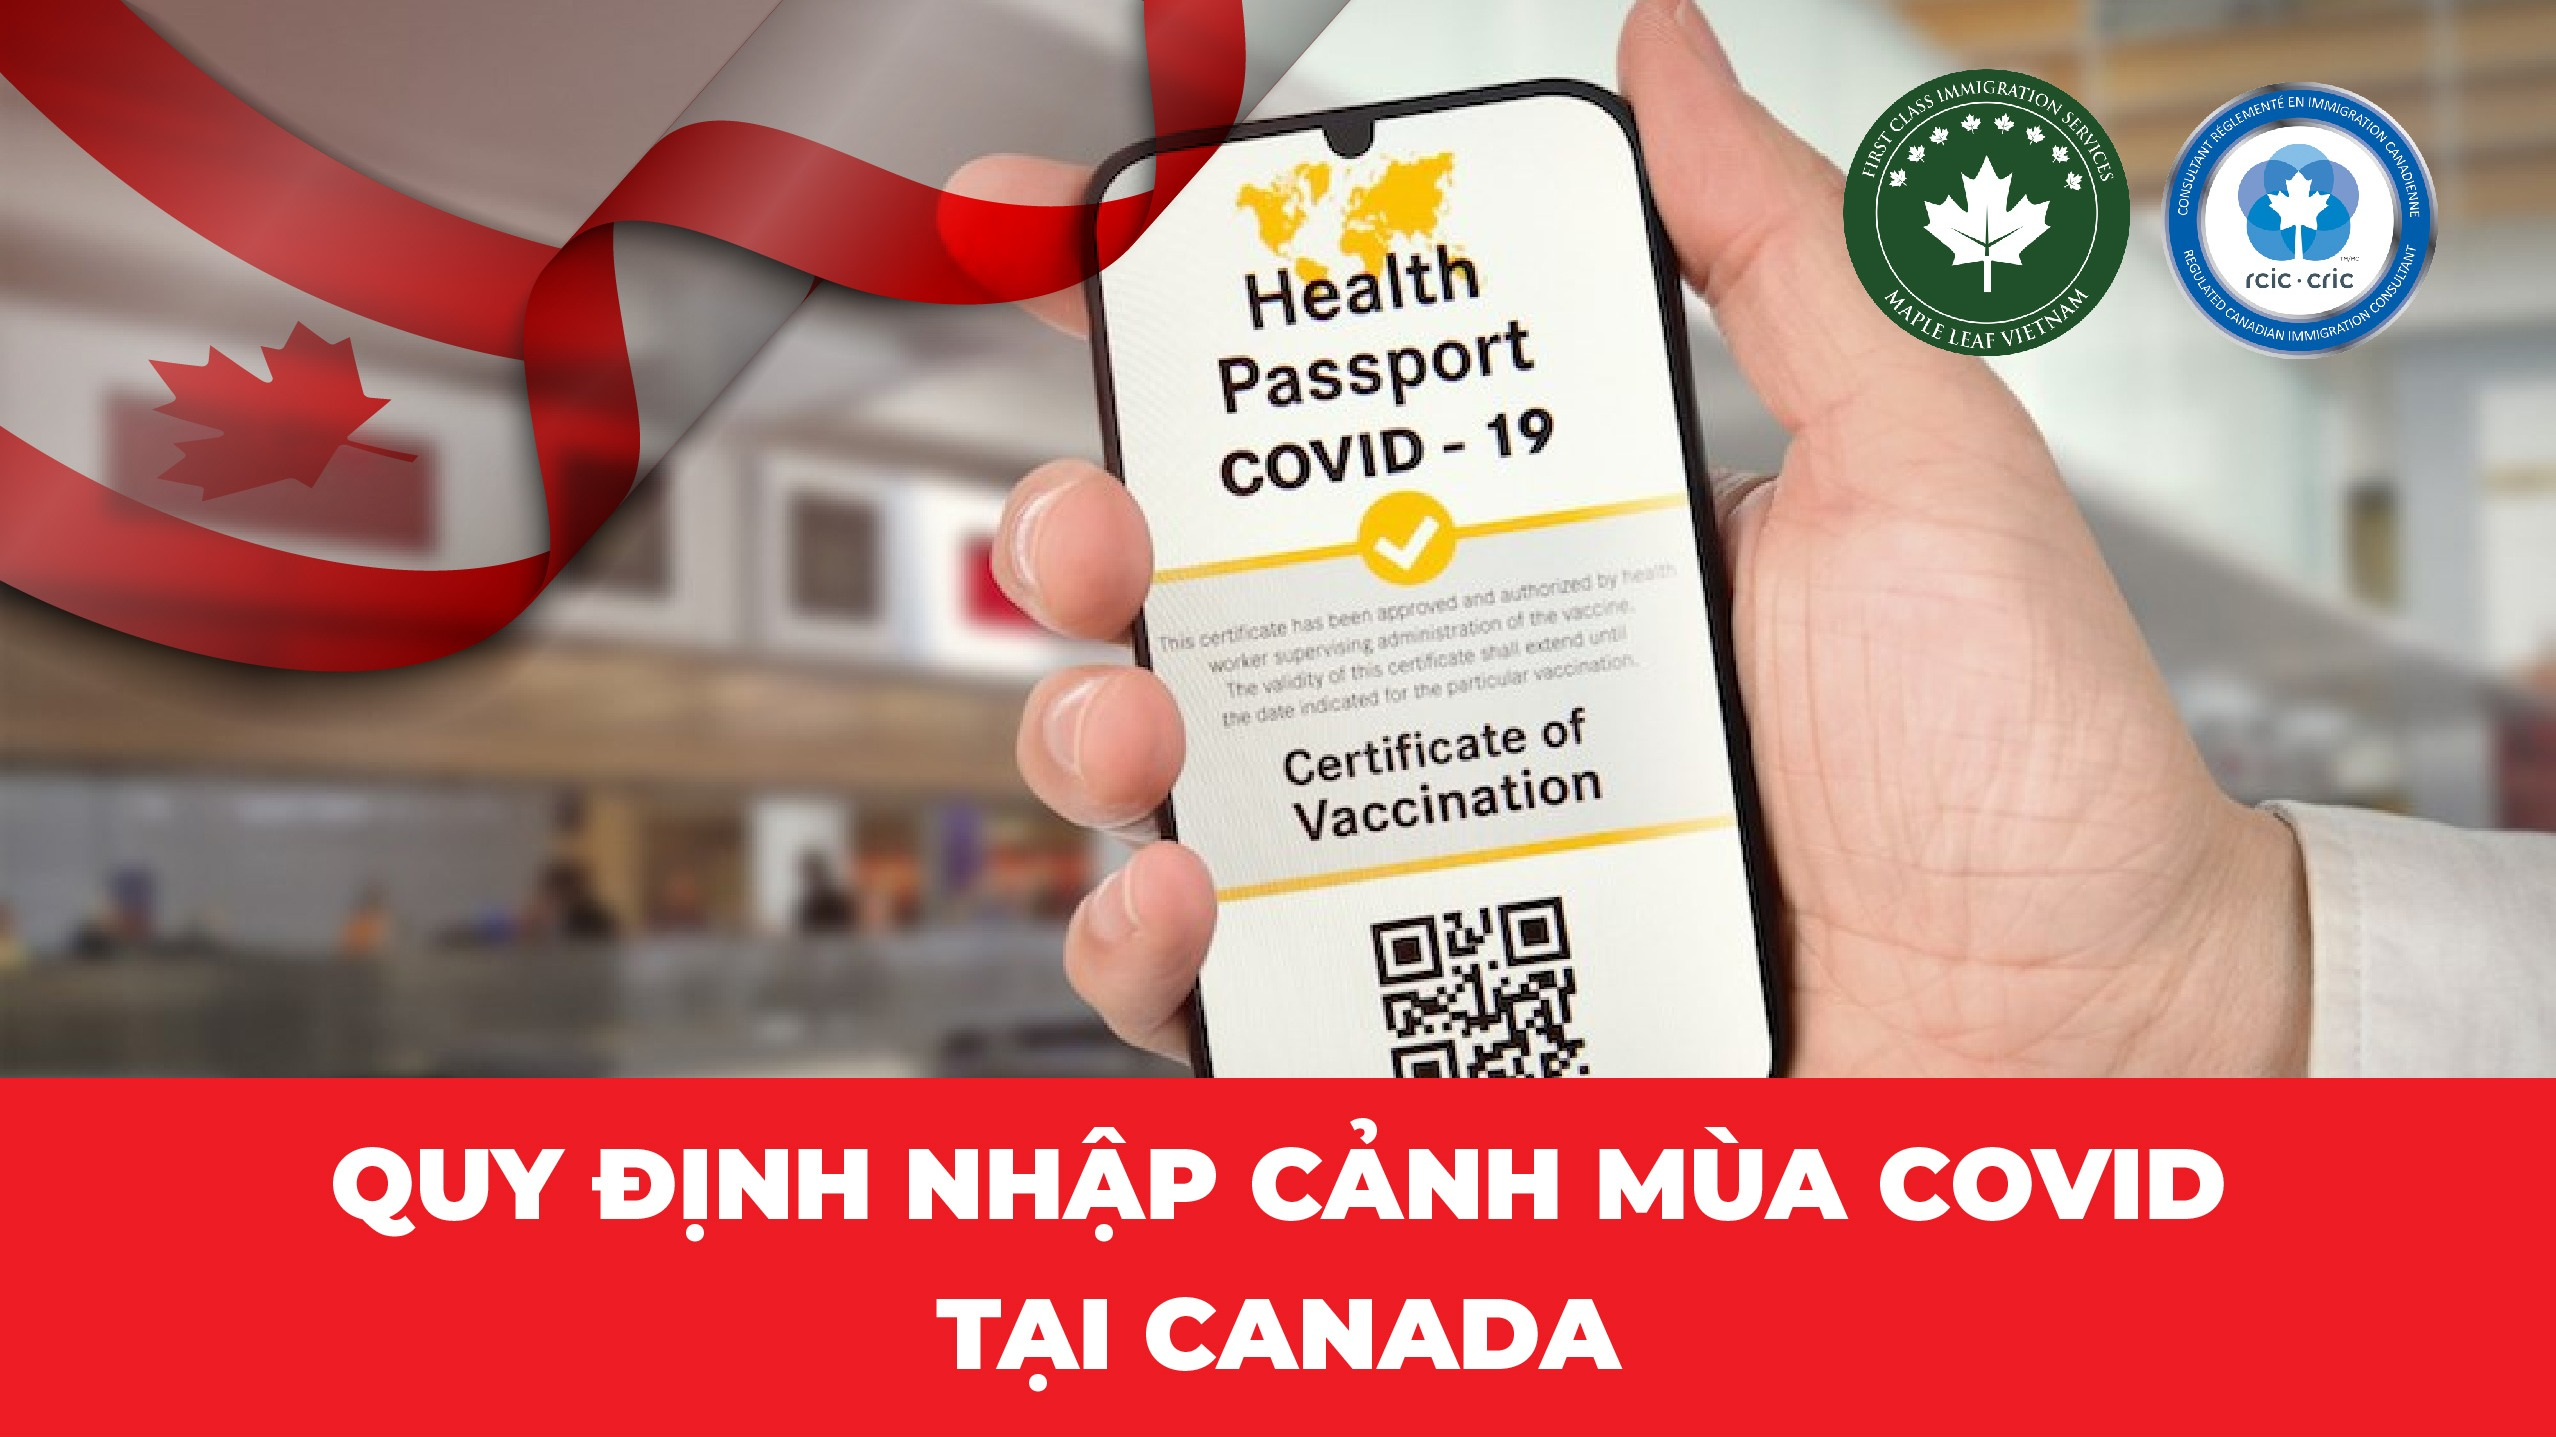 quy-dinh-nhap-canh-mua-covid-tai-canada